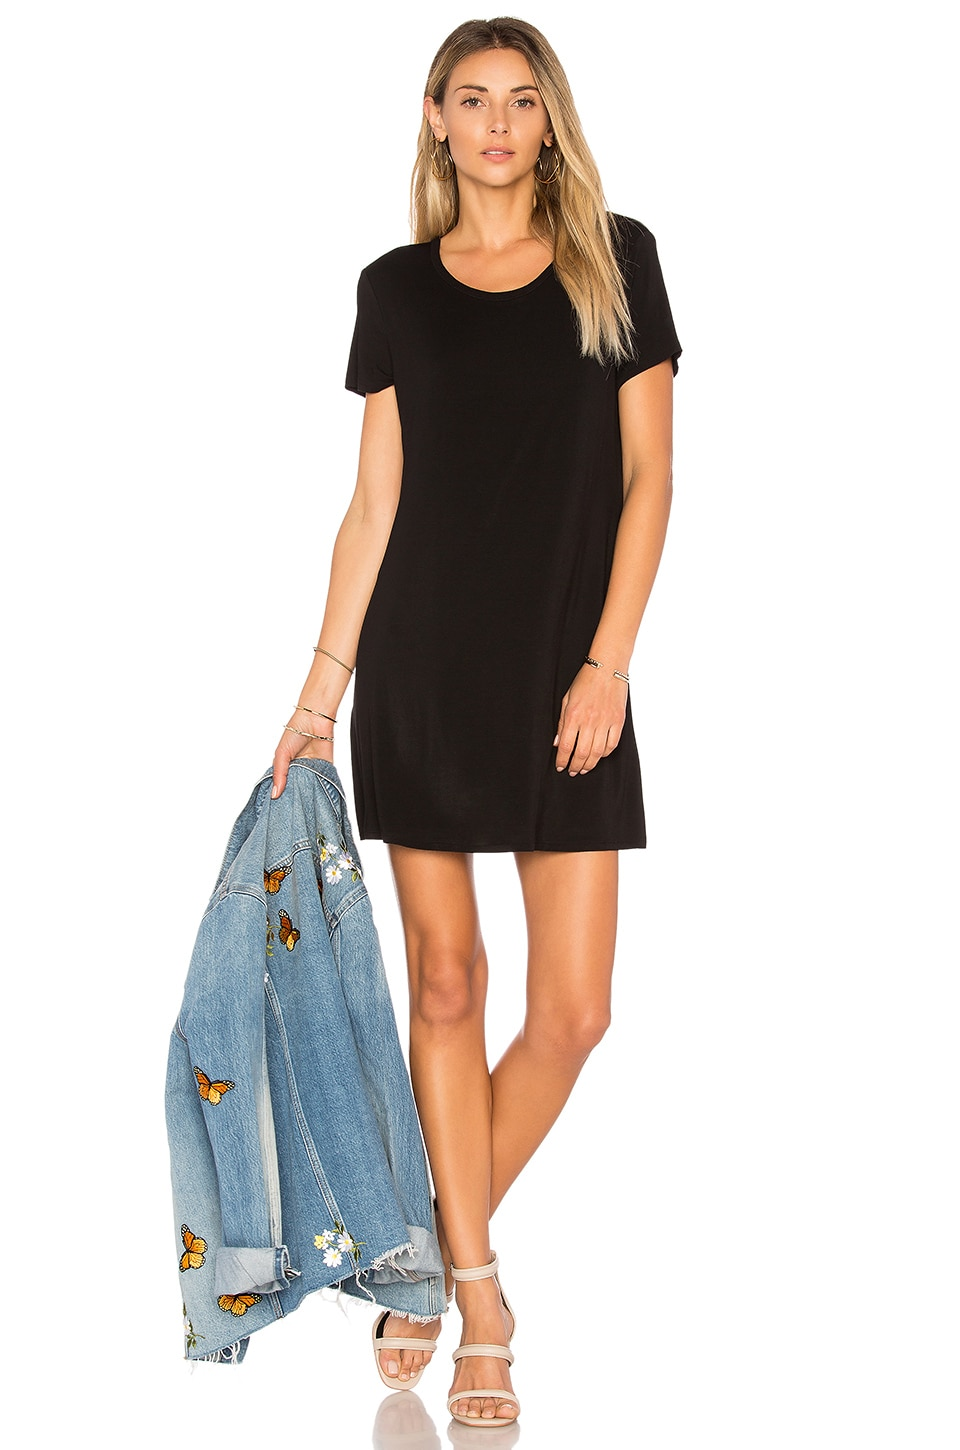 Lovers + Friends Rata Dress in Black